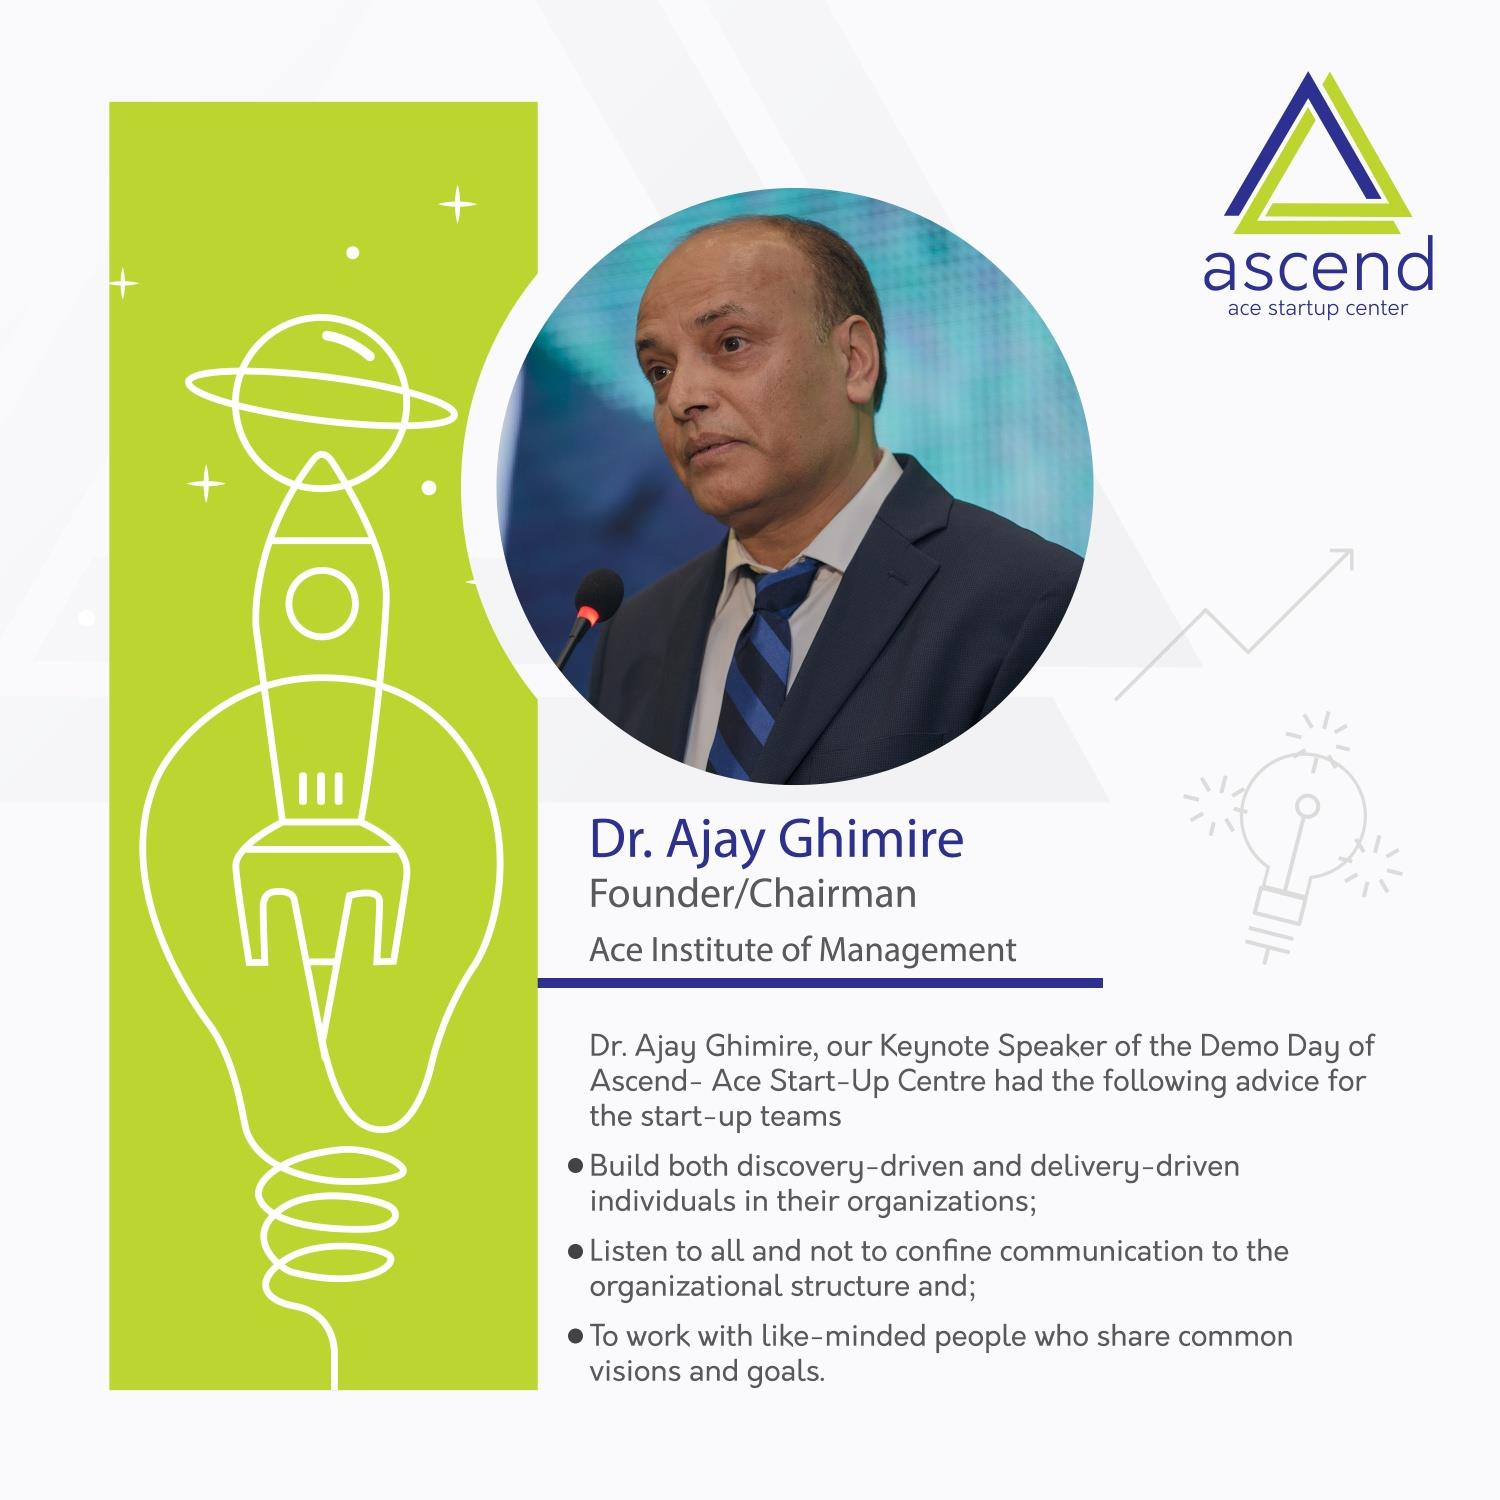 Demo day of Ascend -Ace Start Up Center